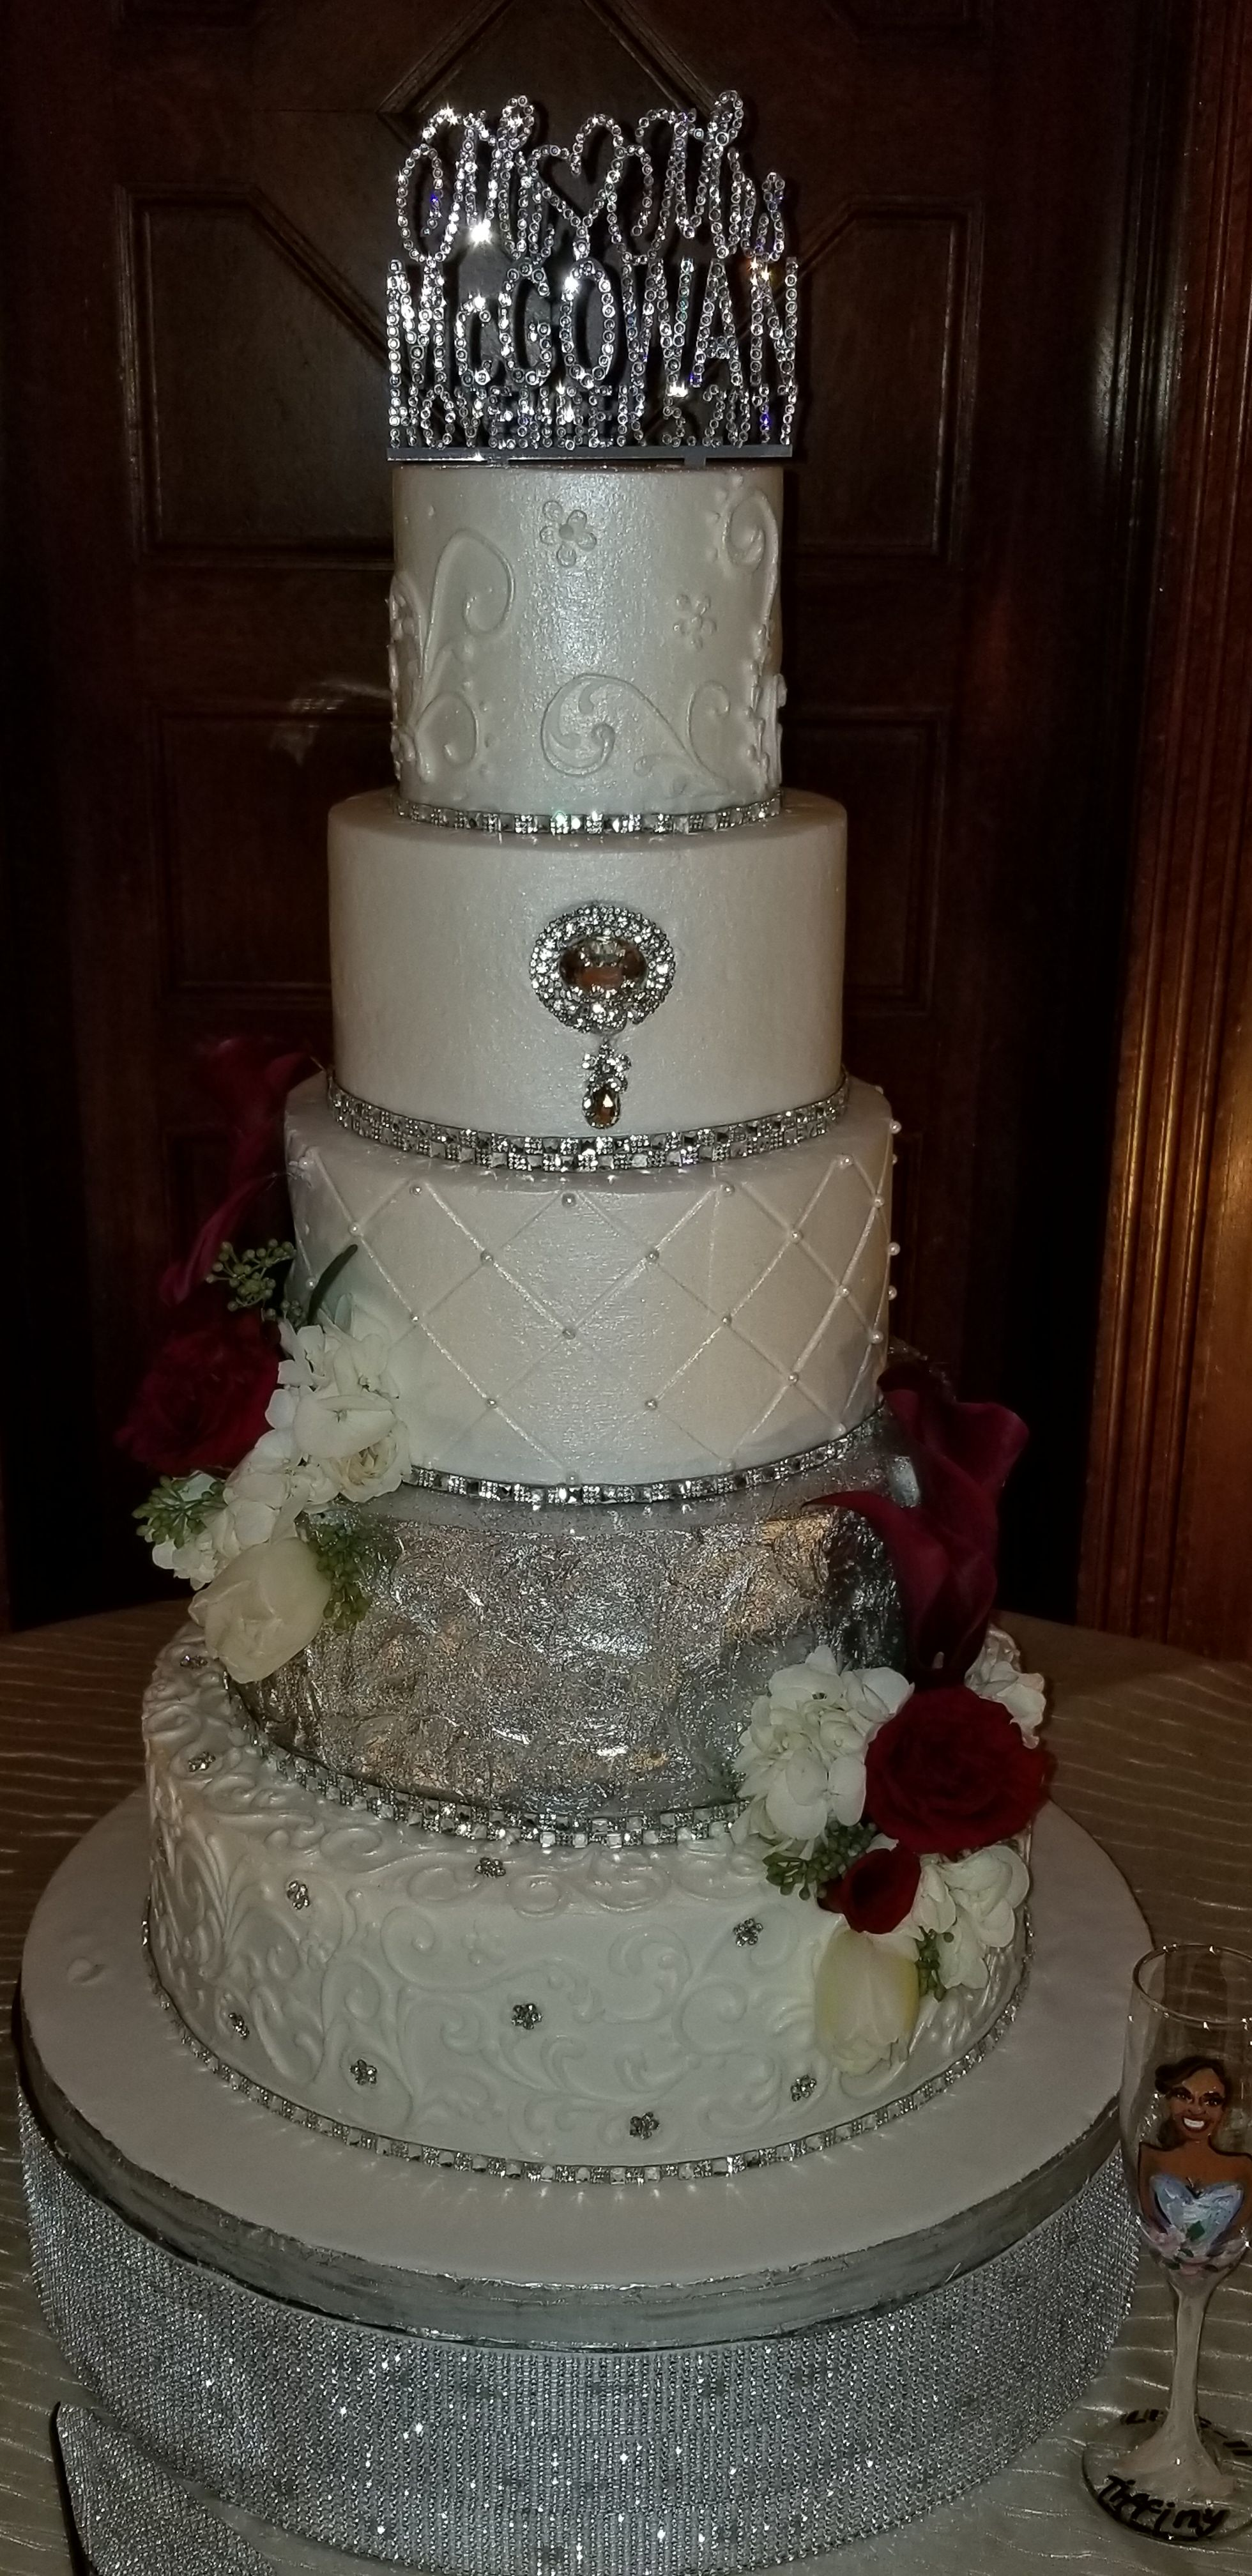 White Wedding Cake With Silver Accents Round Wedding Cakes Elegant Cakes Wedding Cakes Vintage